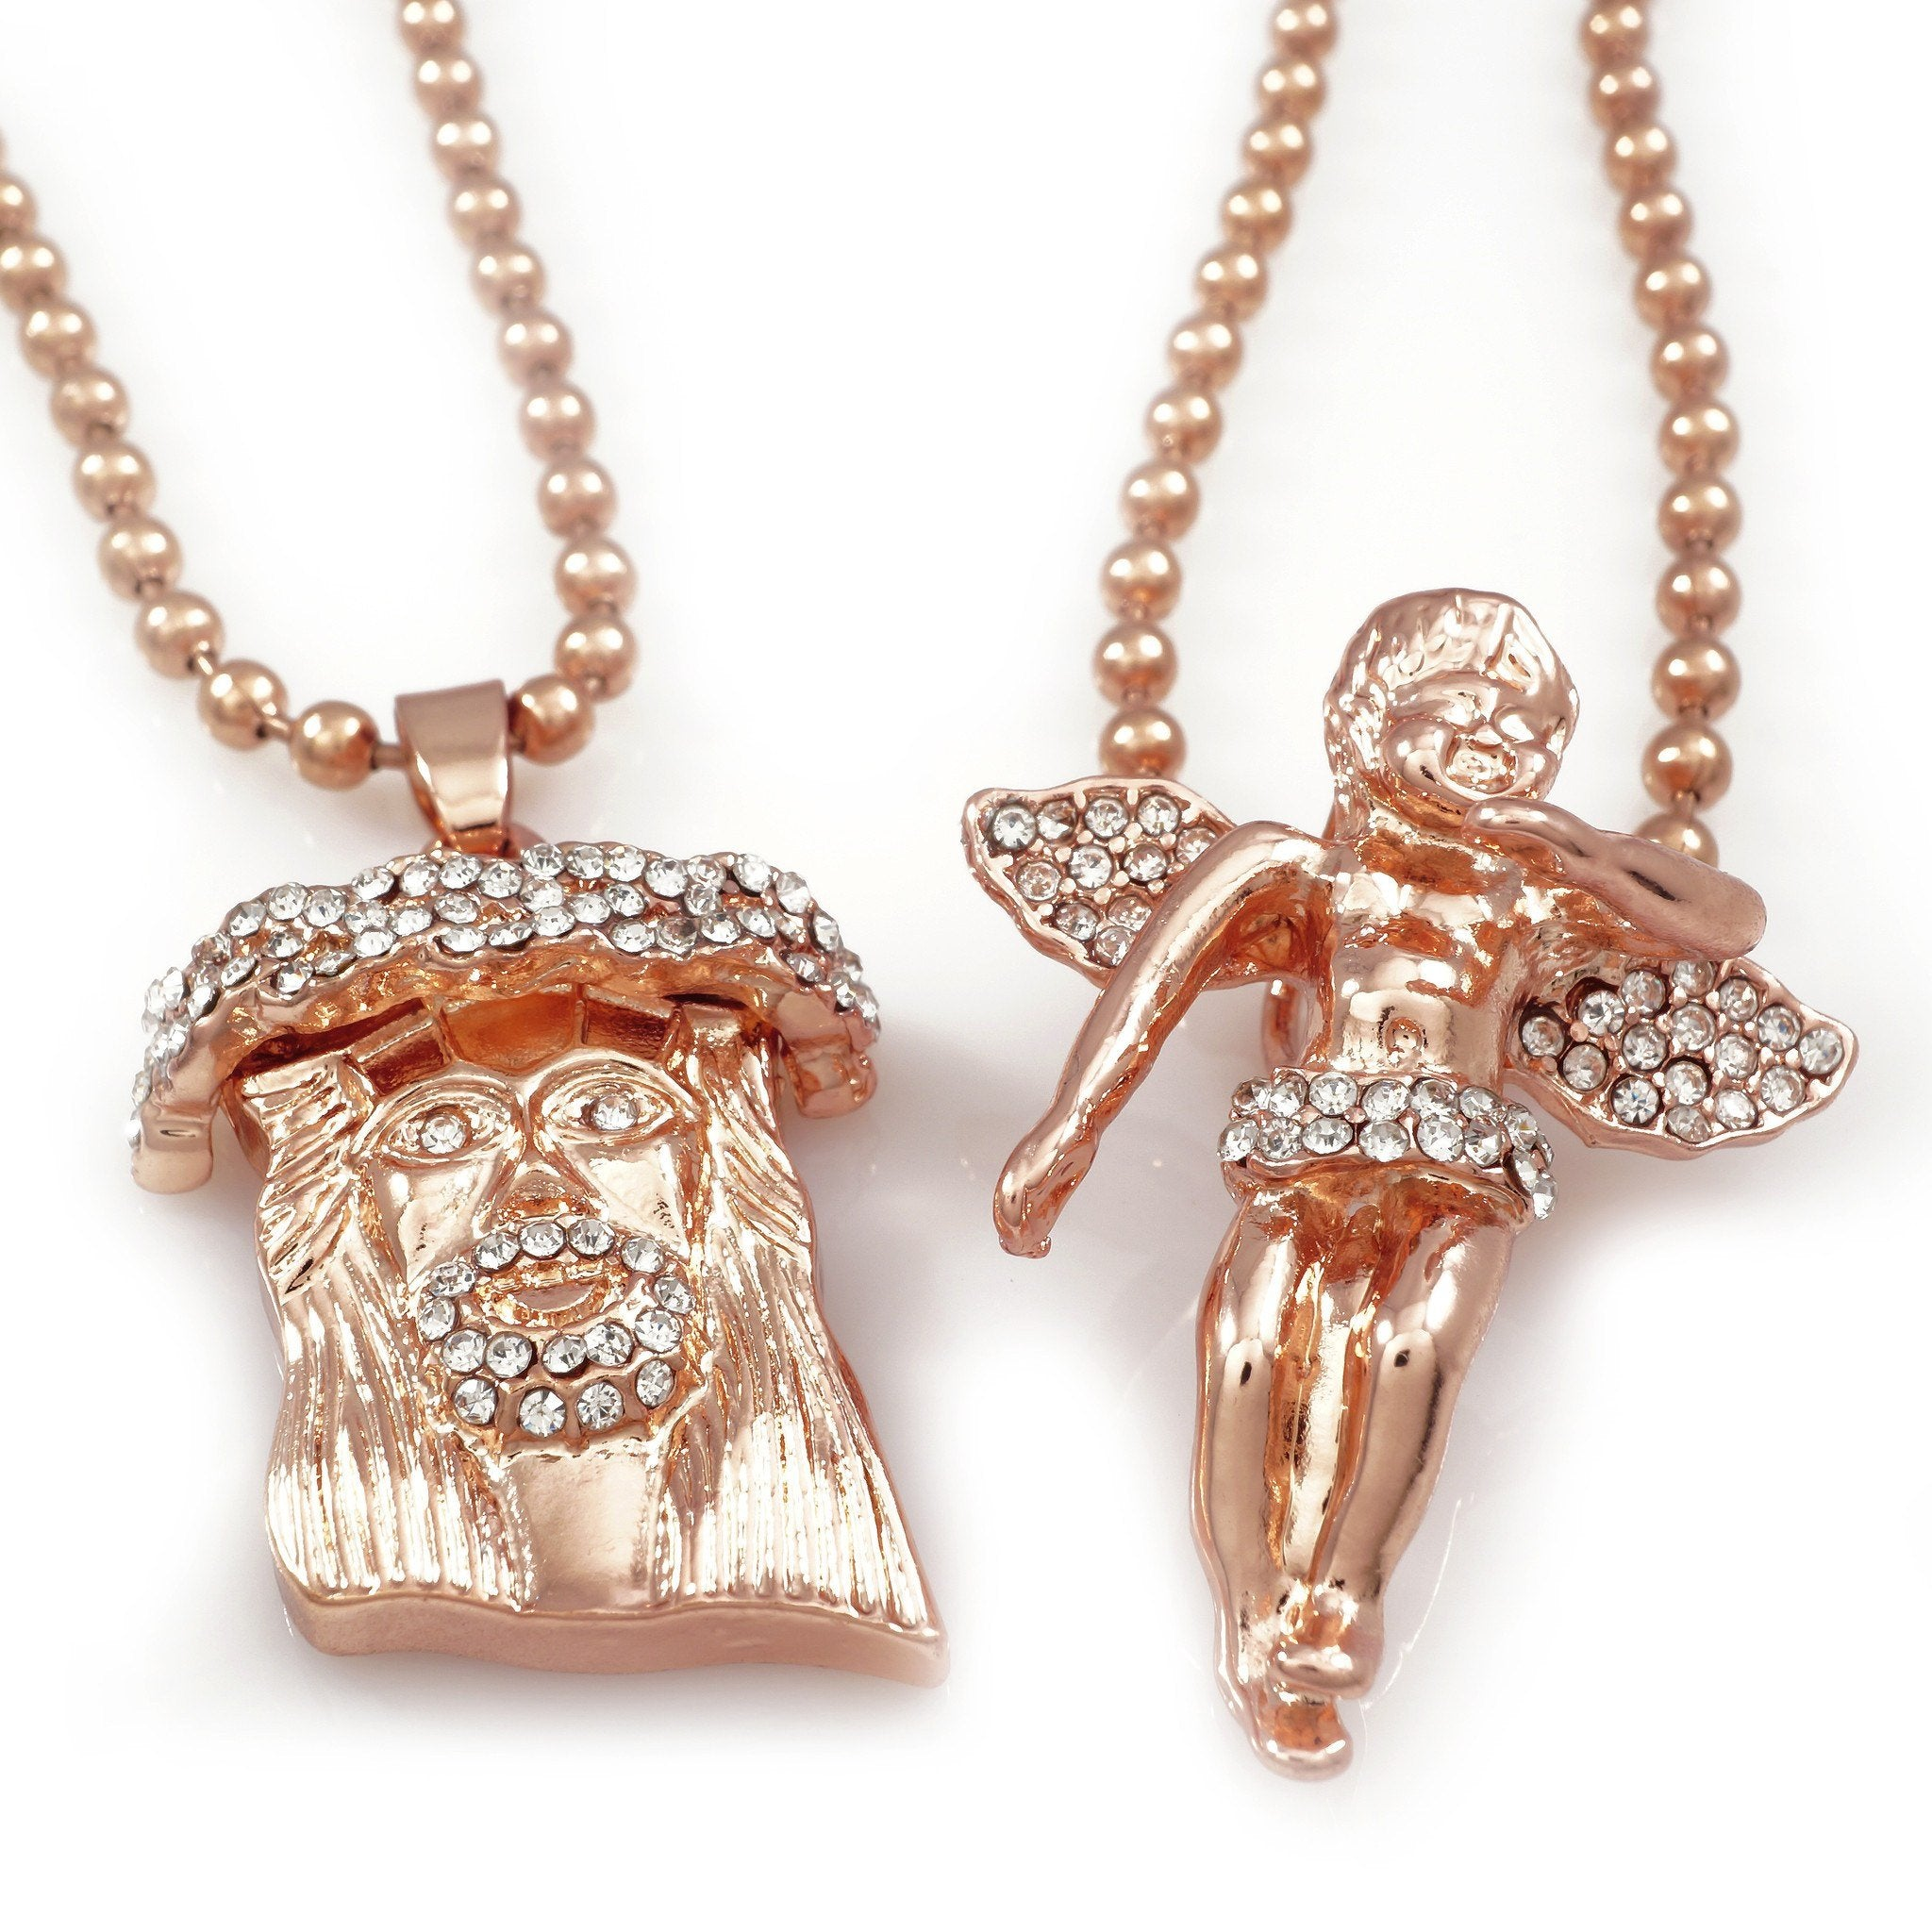 18k Iced Out Rose Gold Angel and Jesus Piece Combo With Ball Chain